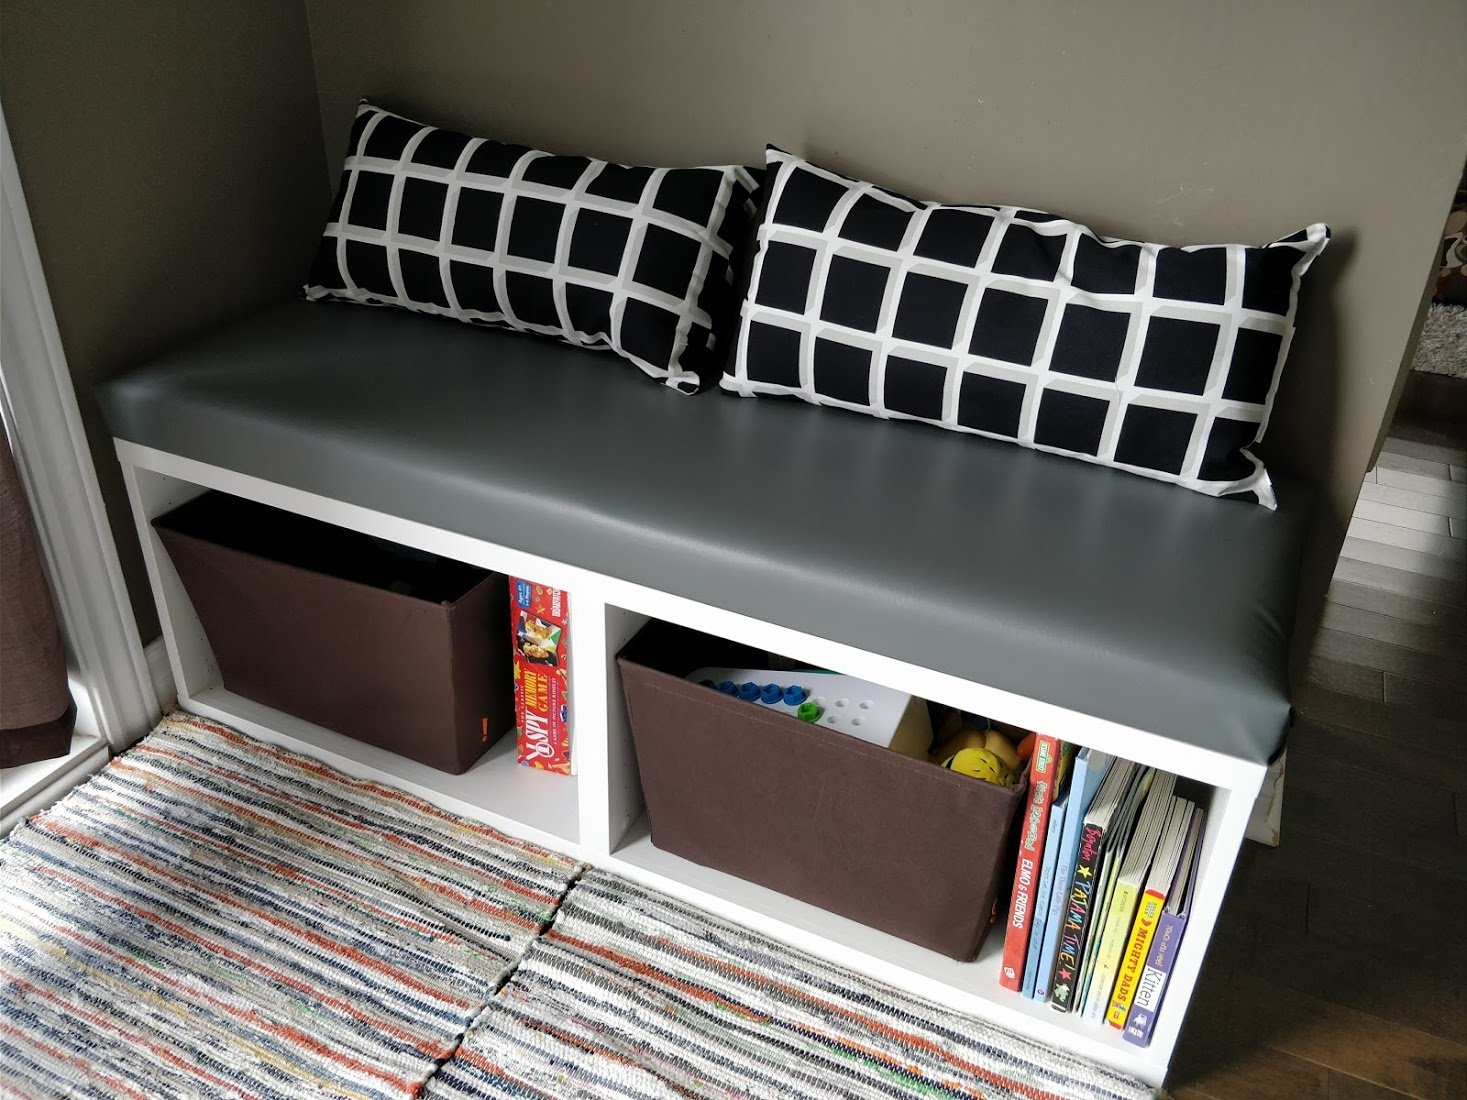 Tremendous Ikea Besta Hack Diy Seating Bench Perfect For Small Spaces Andrewgaddart Wooden Chair Designs For Living Room Andrewgaddartcom